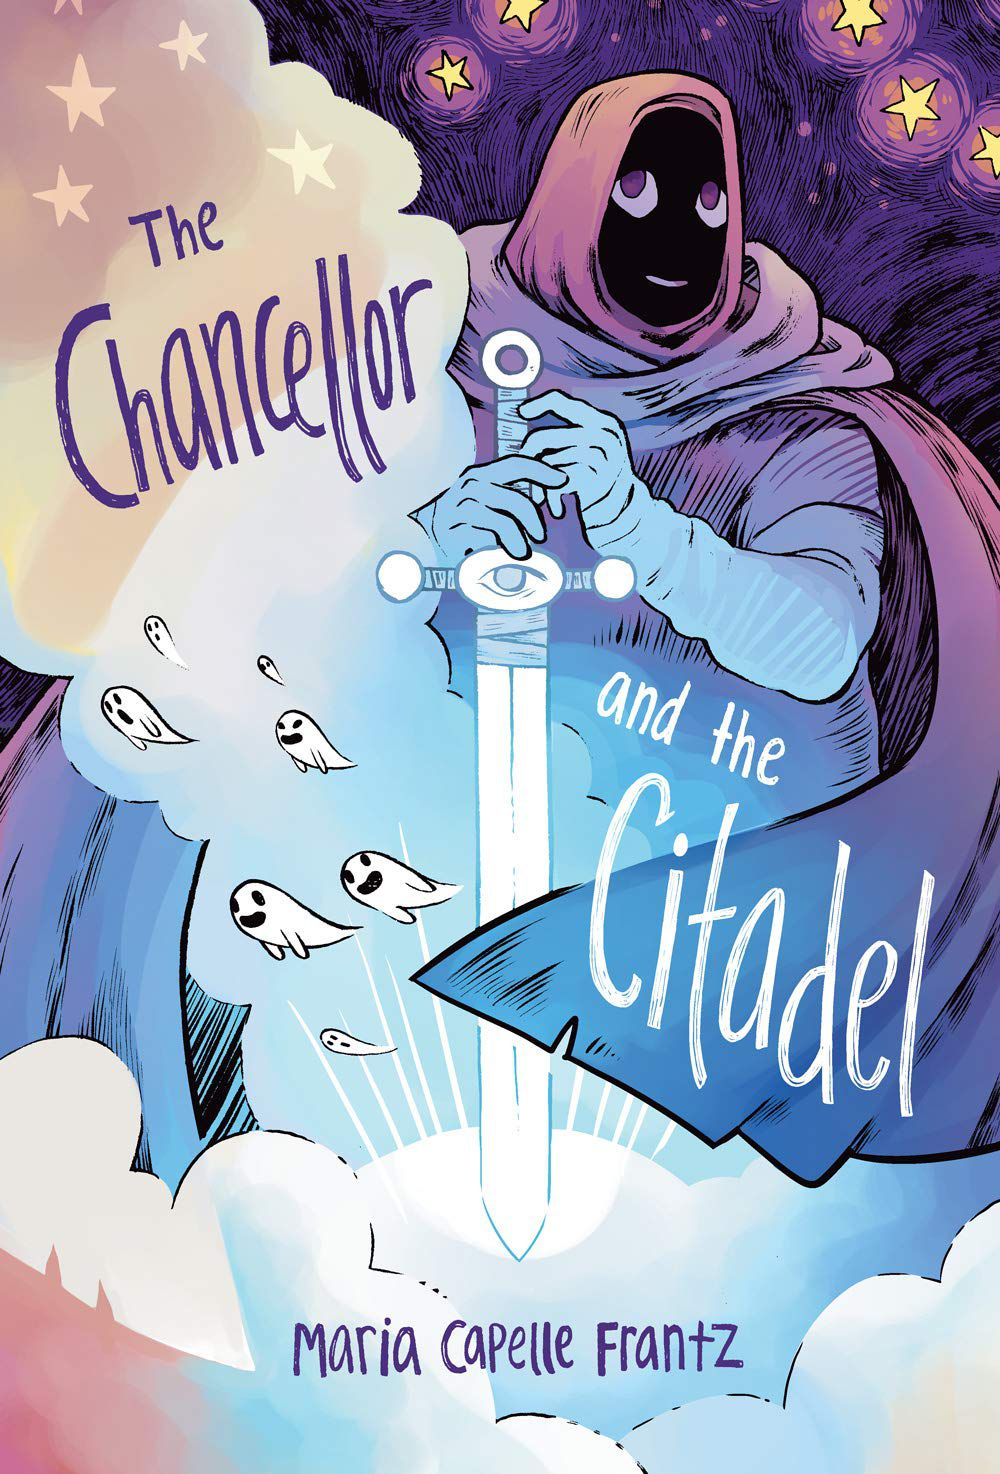 The Chancellor and the Citadel cover